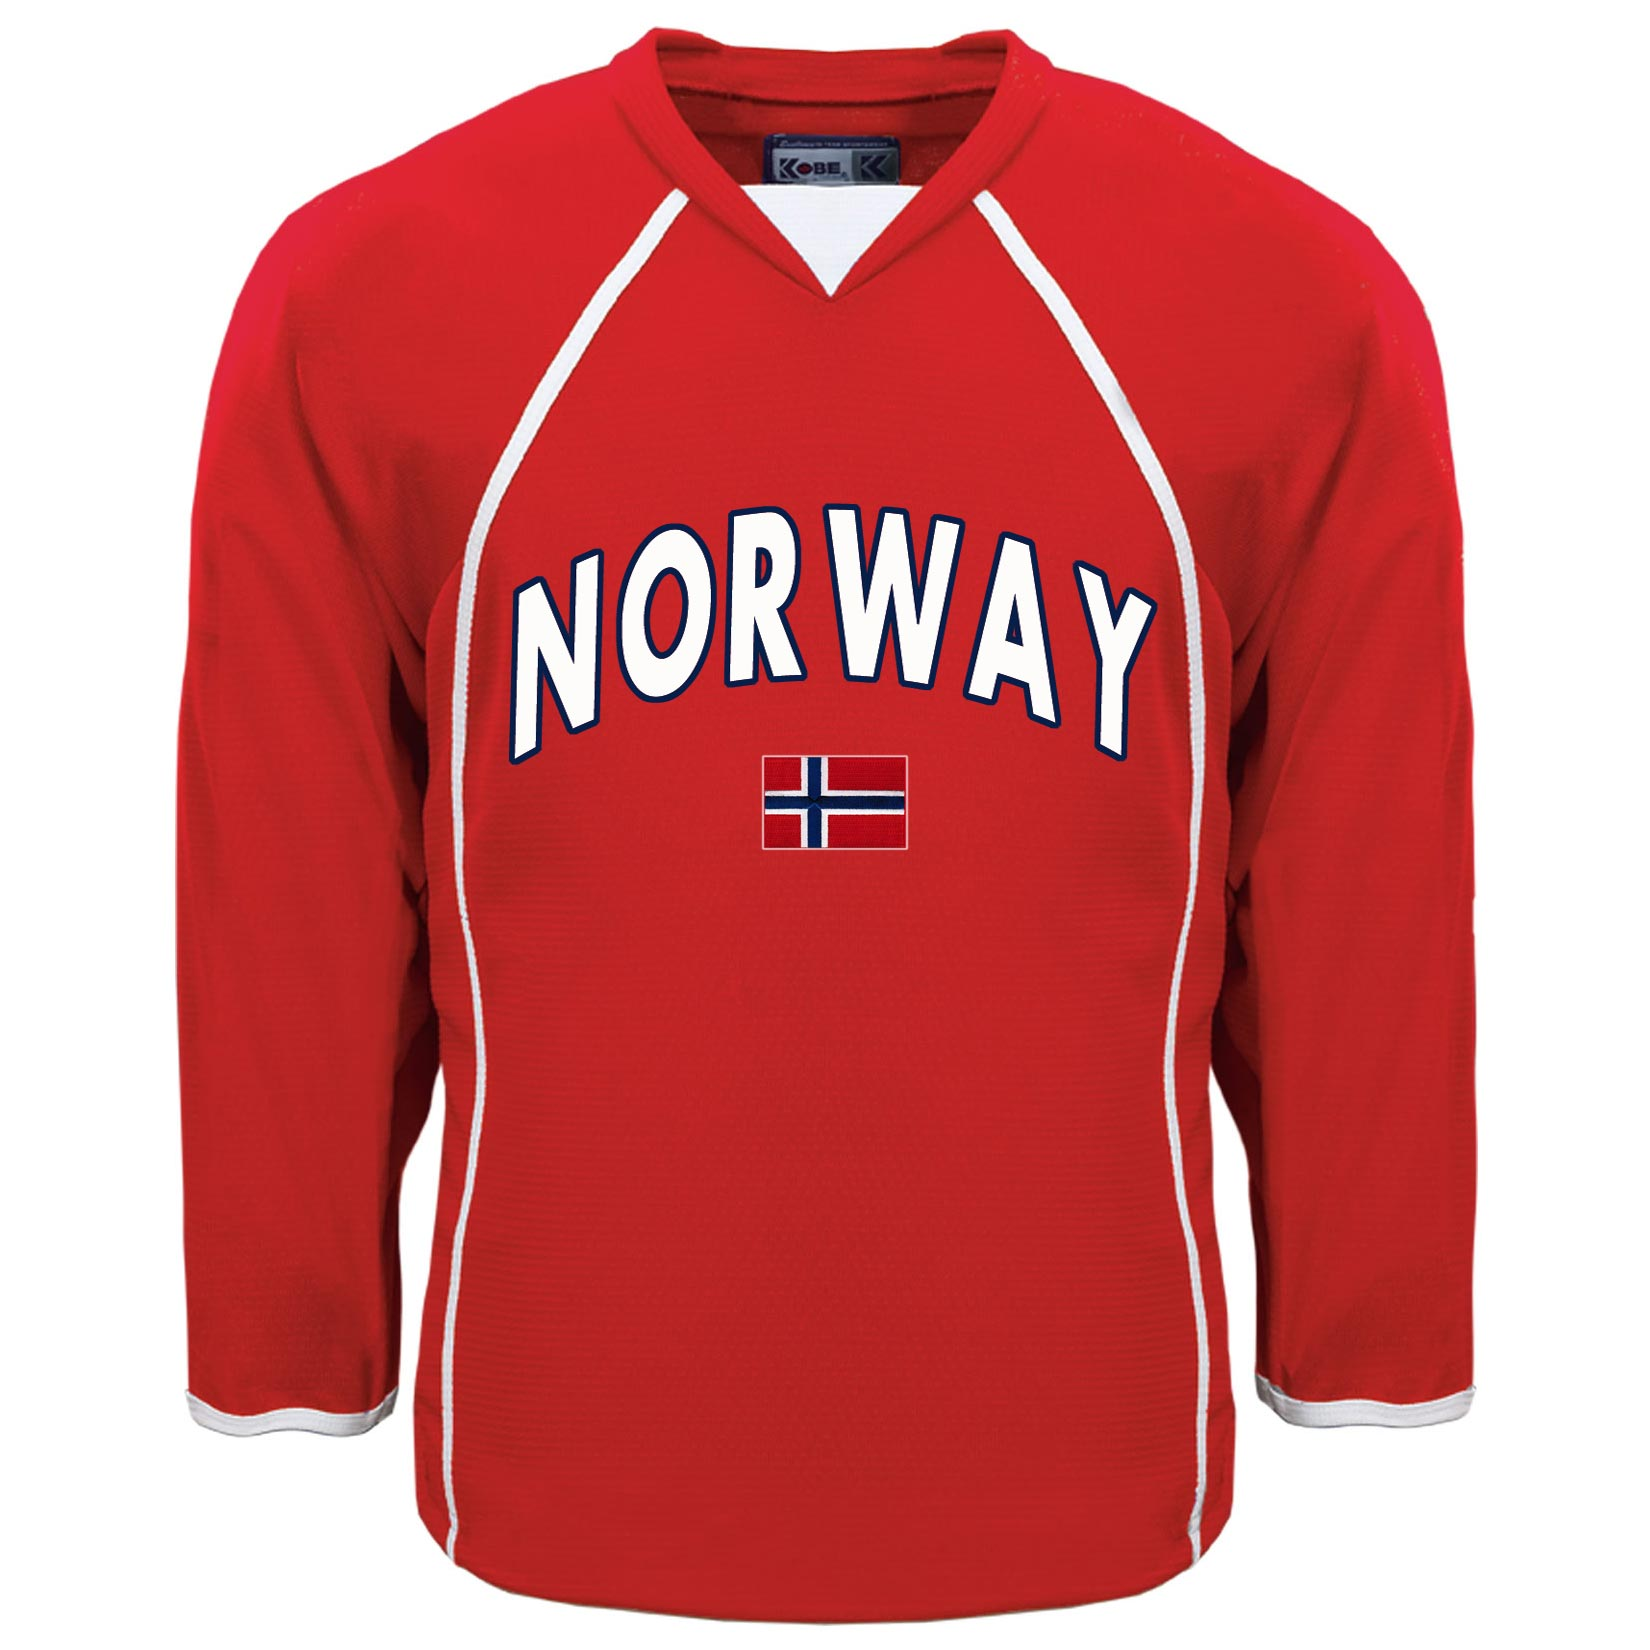 brand new 131eb 4c9db Norway MyCountry Fan Hockey Jersey